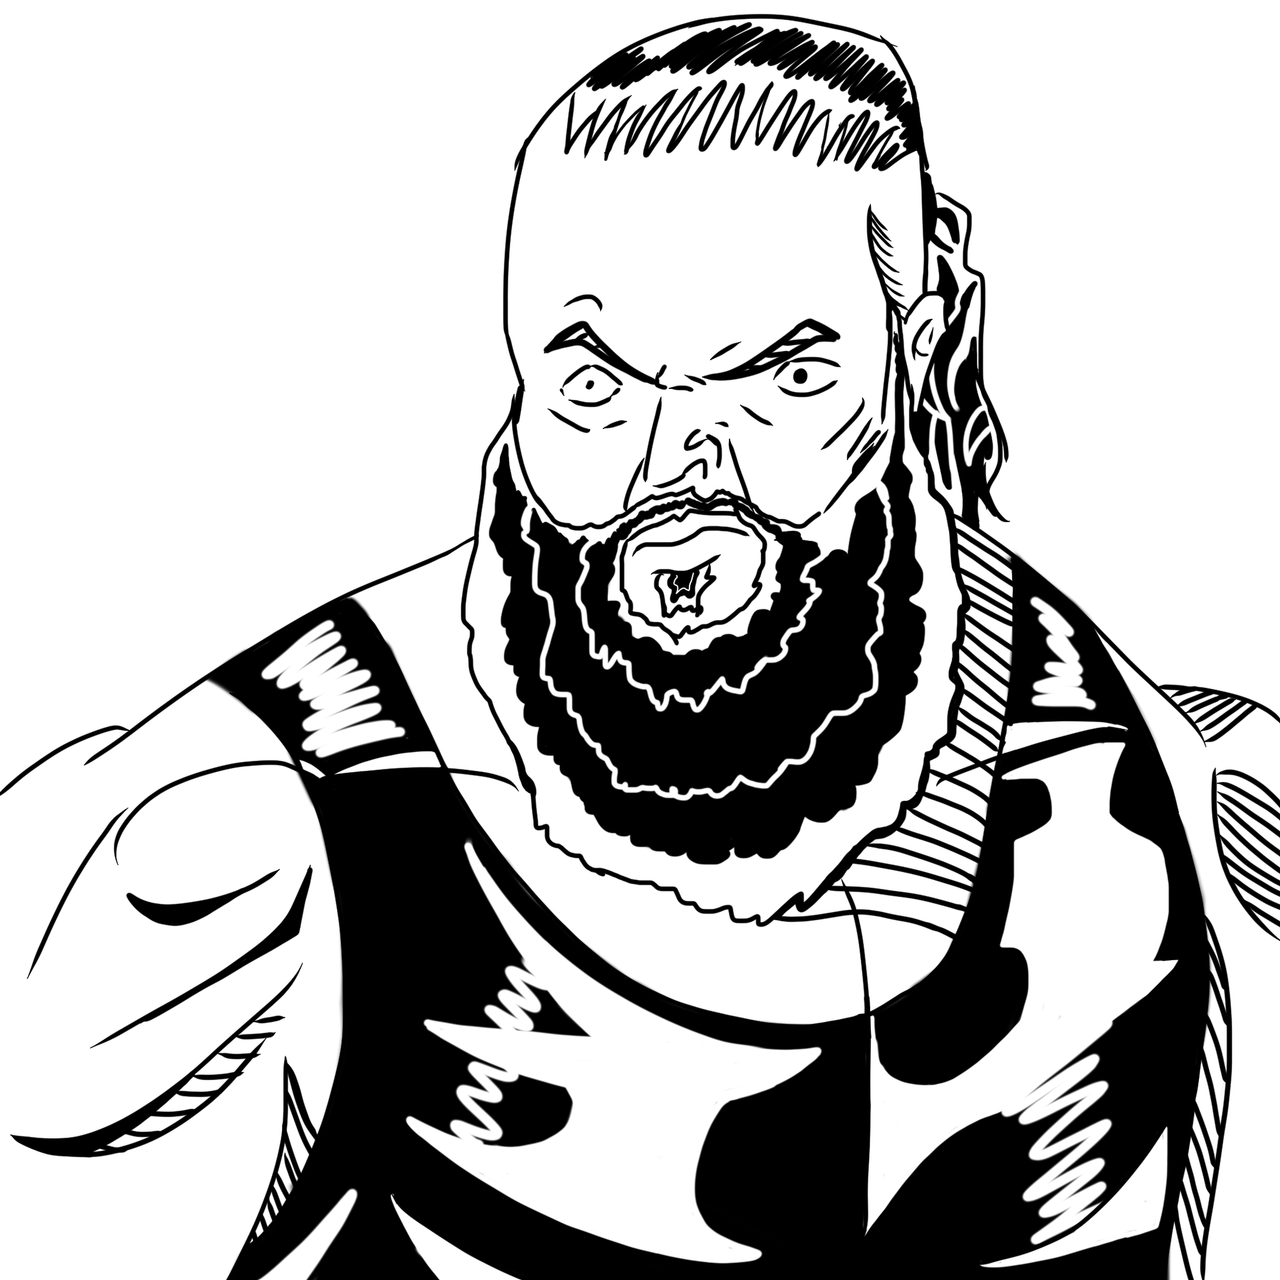 Brawn Strowman Coloring Pages